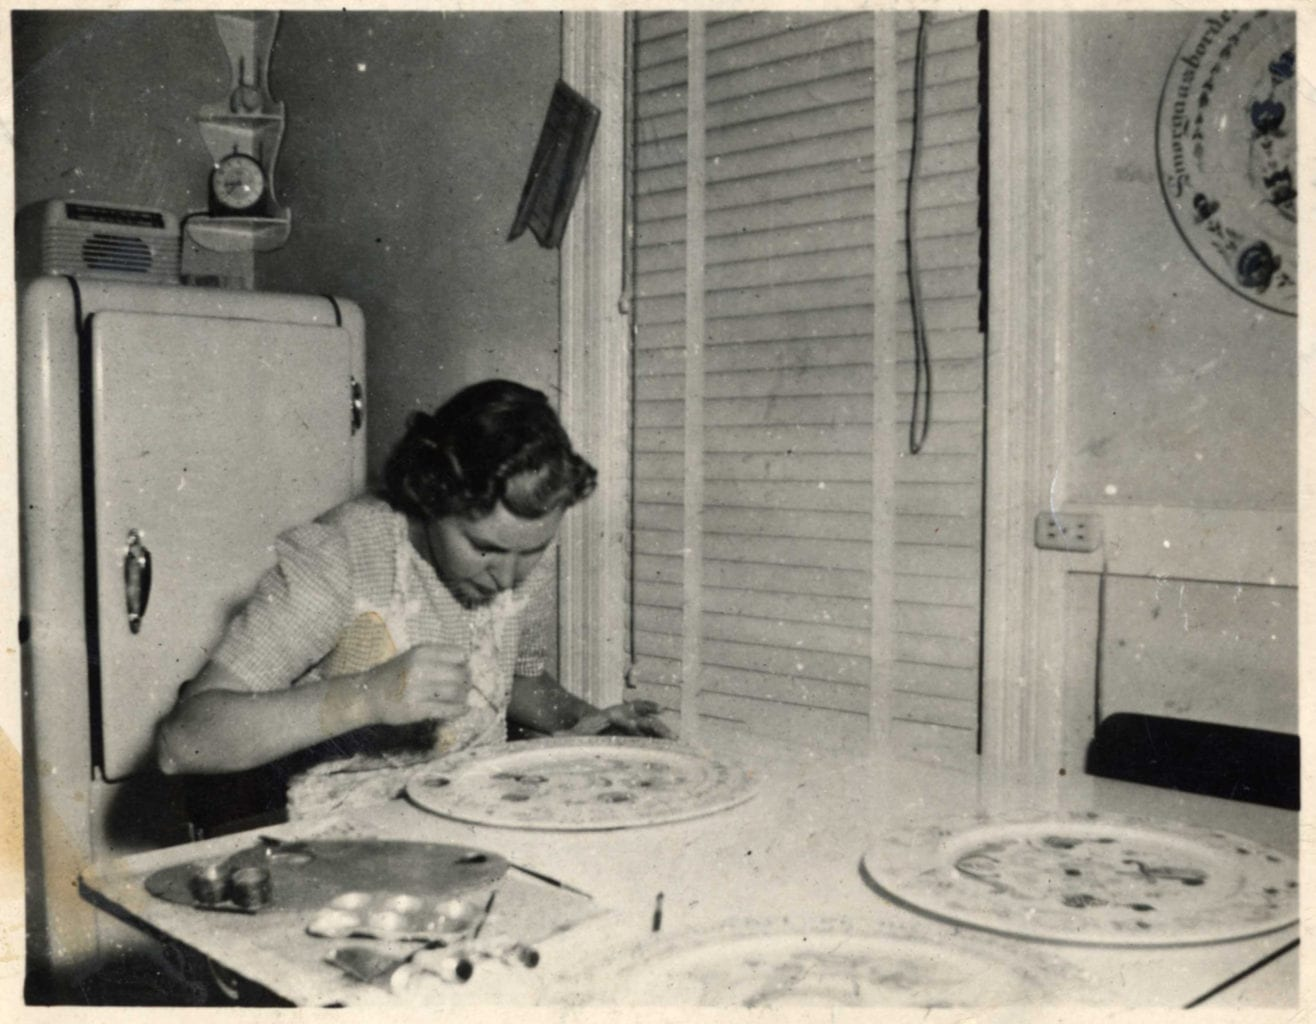 possibly Louise Lysne rosemaling a plate